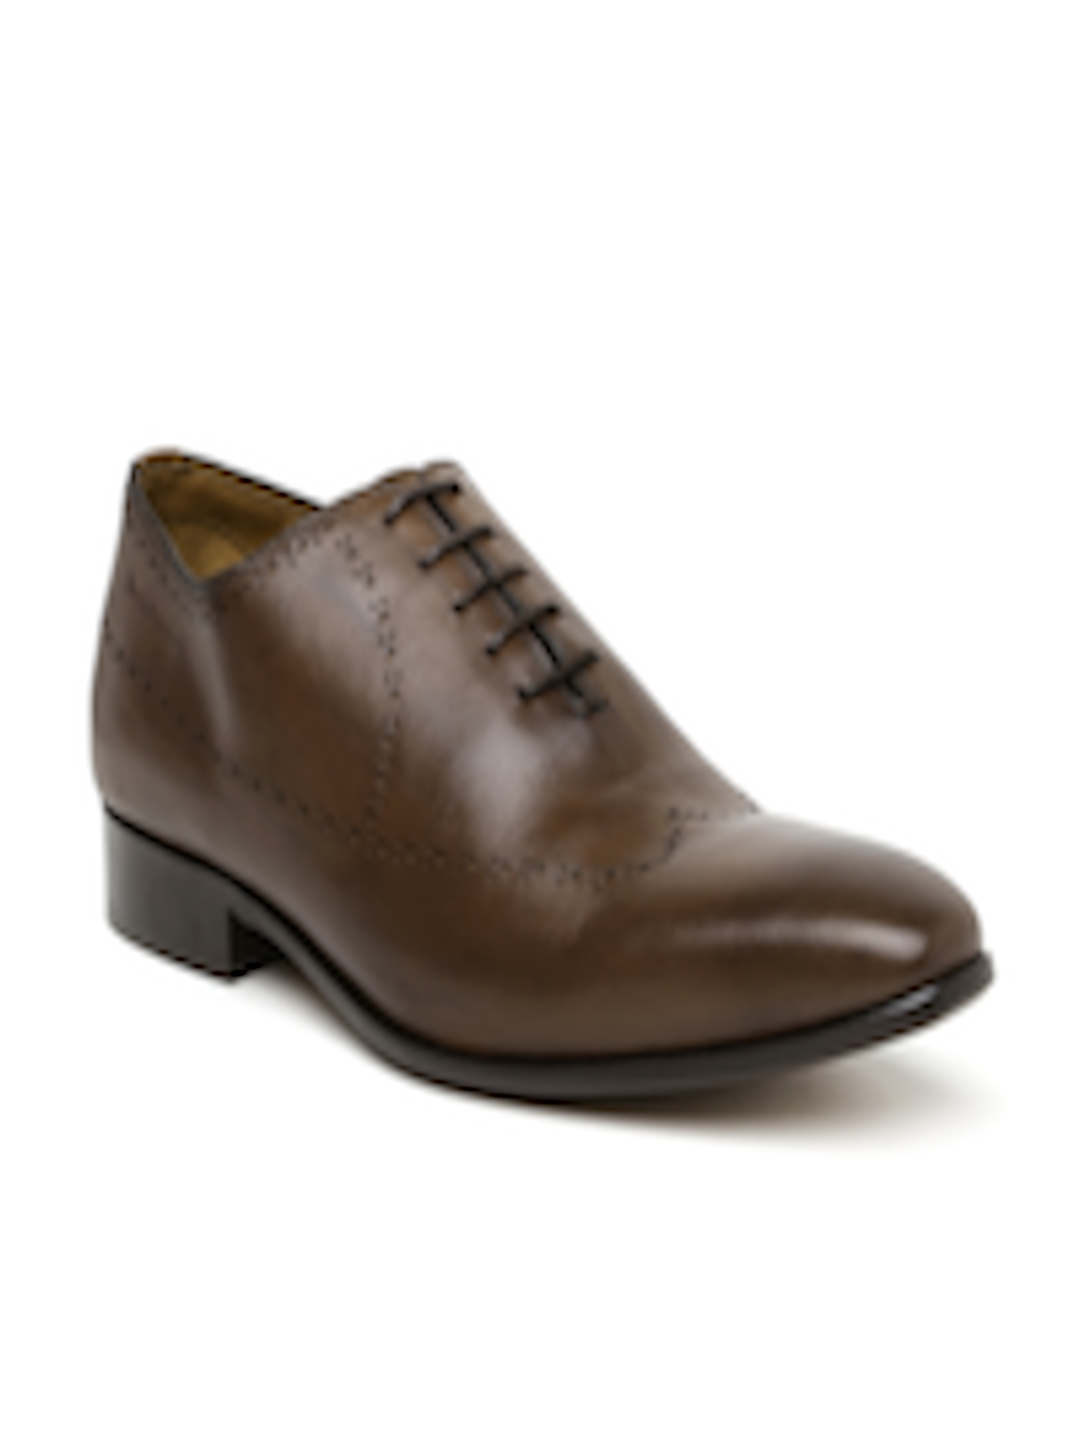 Active Hush Puppies Shoes For Men